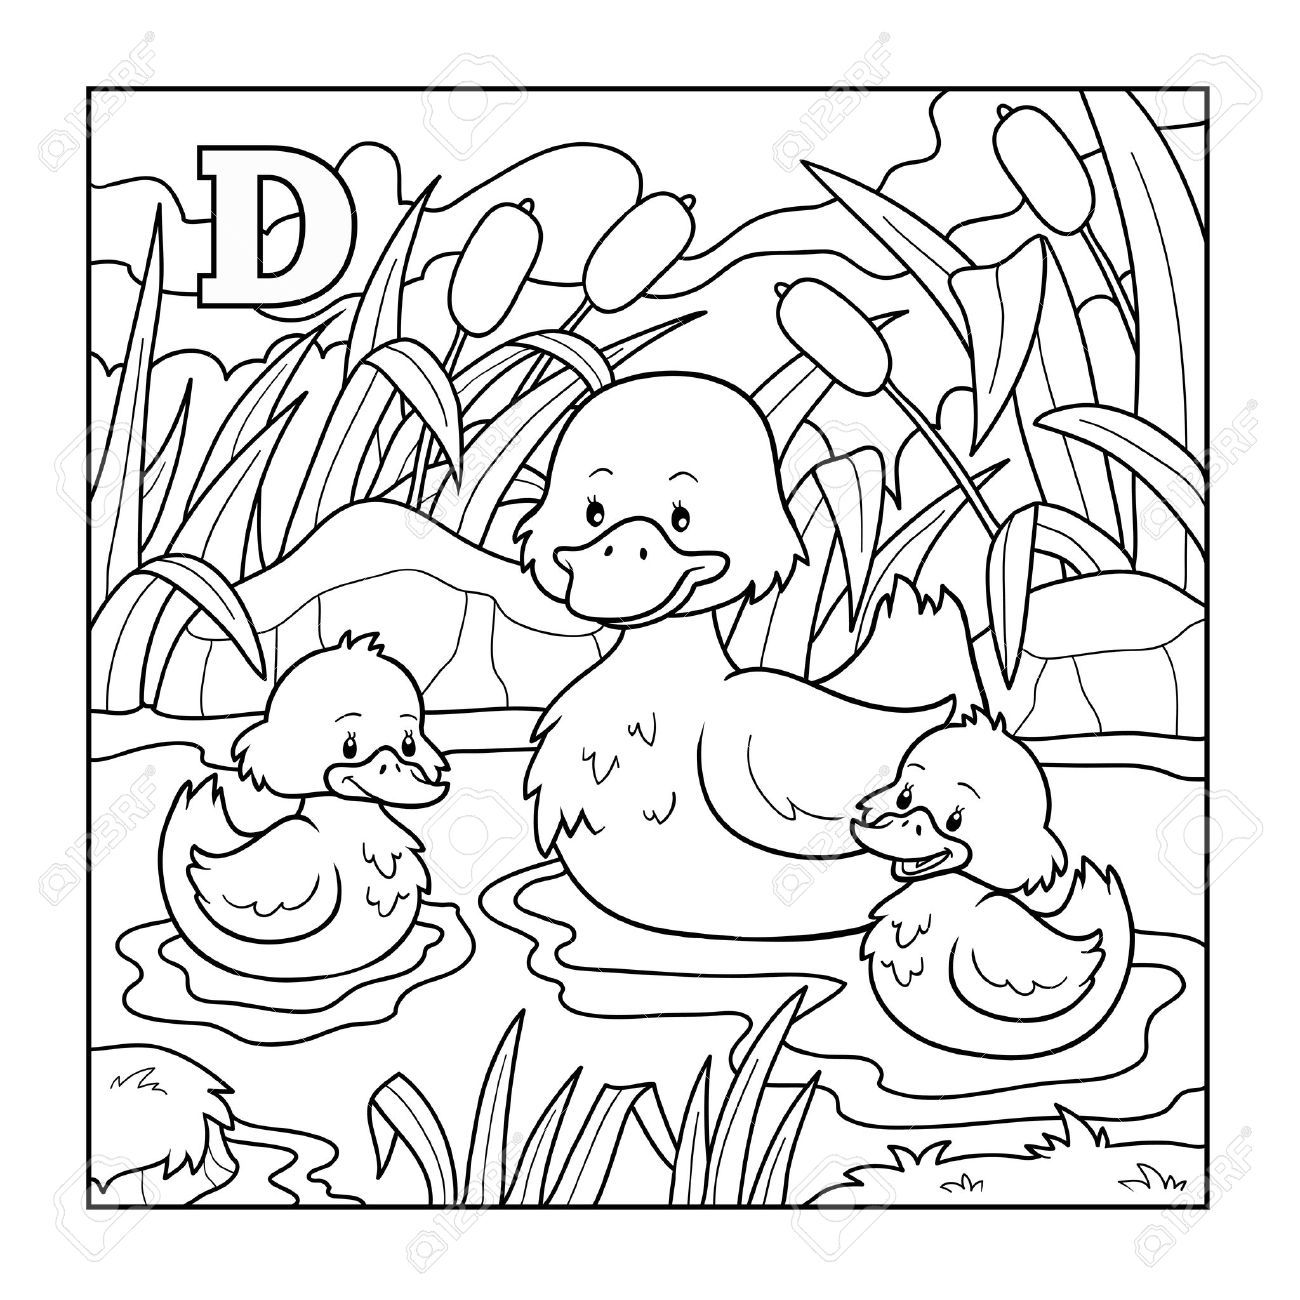 Coloring book (duck), colorless illustration (letter D